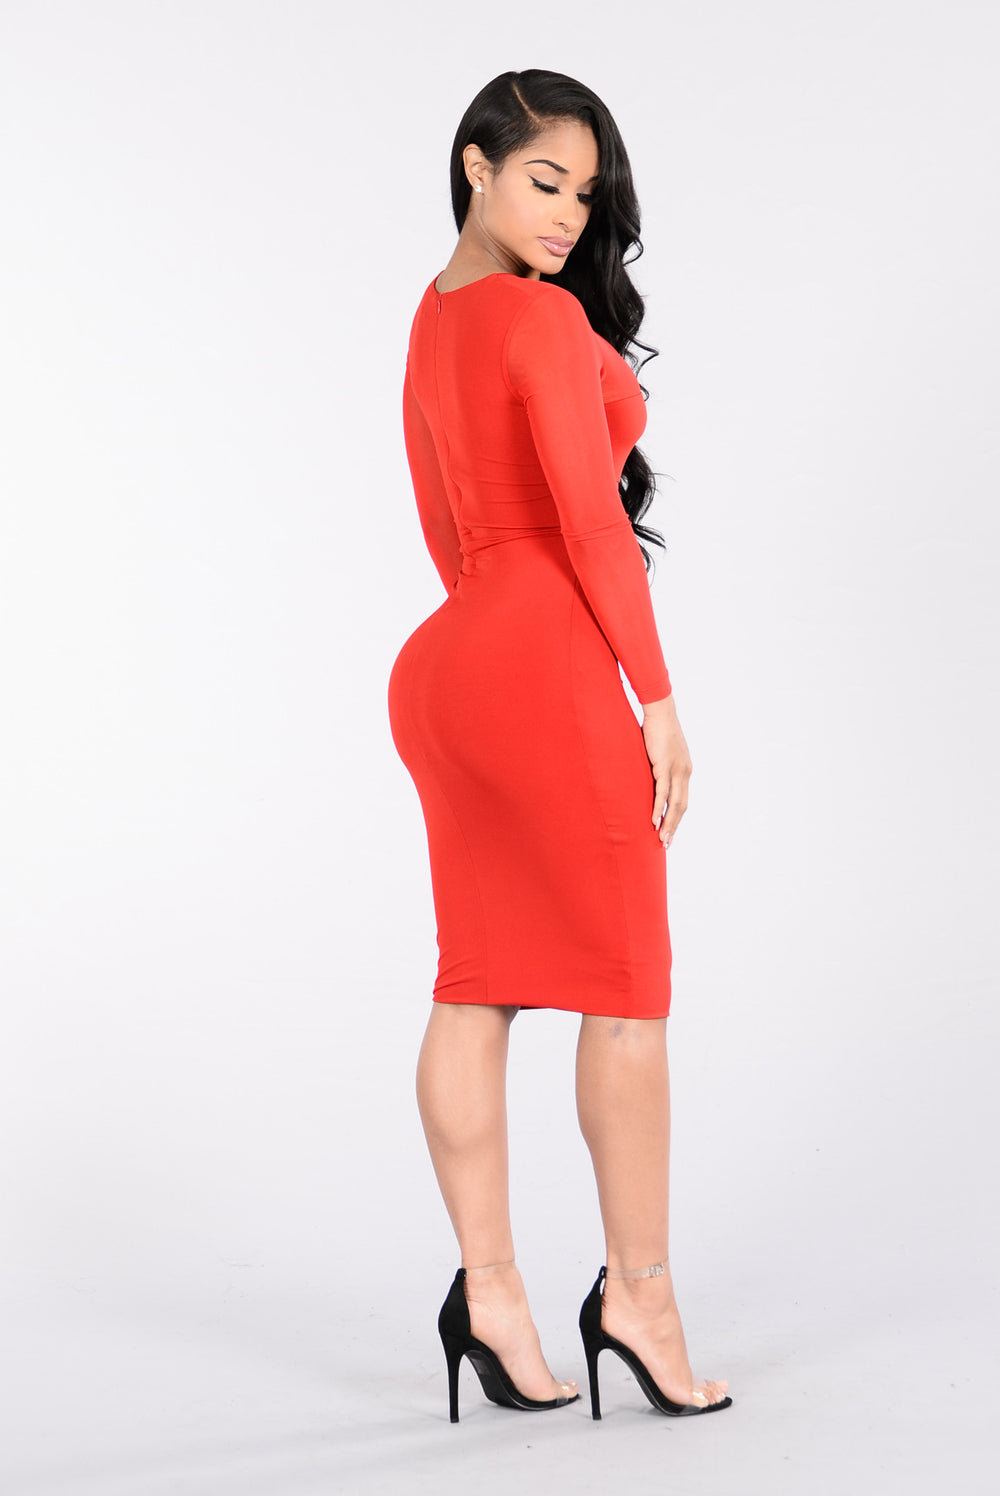 Instant Friend Dress - Red